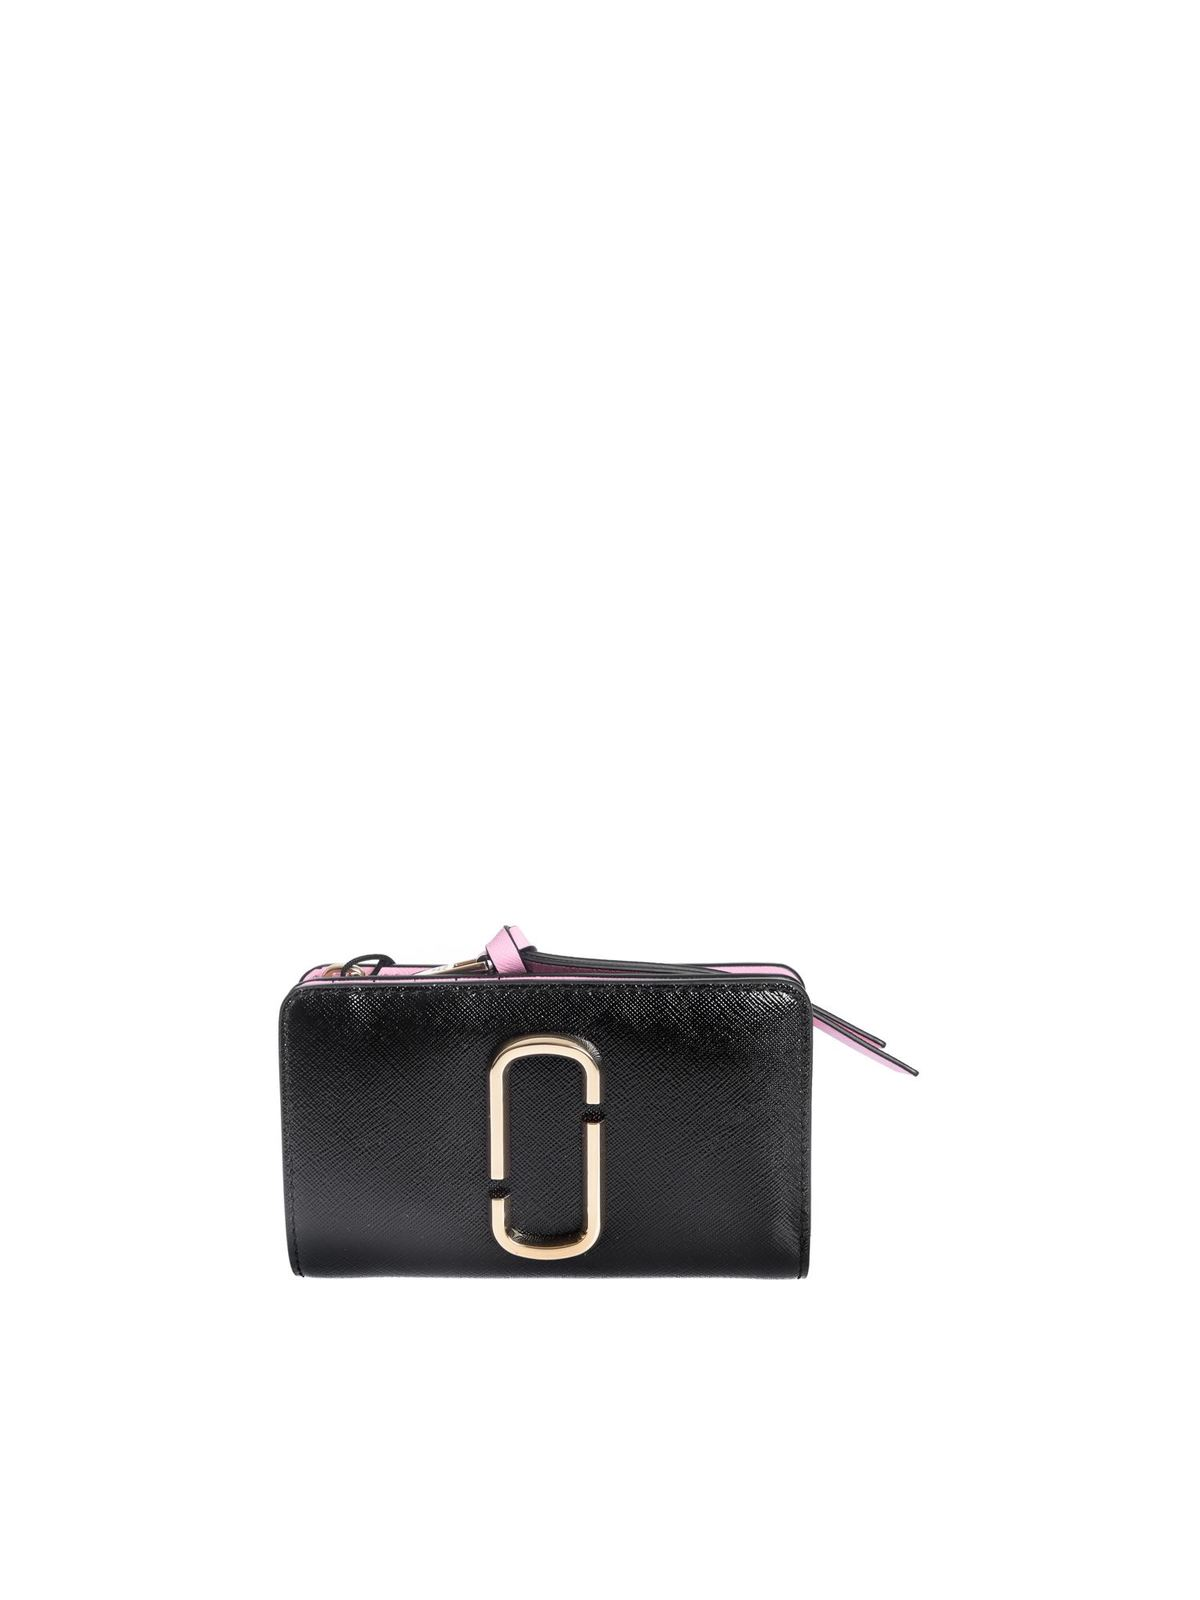 MARC JACOBS THE SNAPSHOT COMPACT WALLET IN BLACK